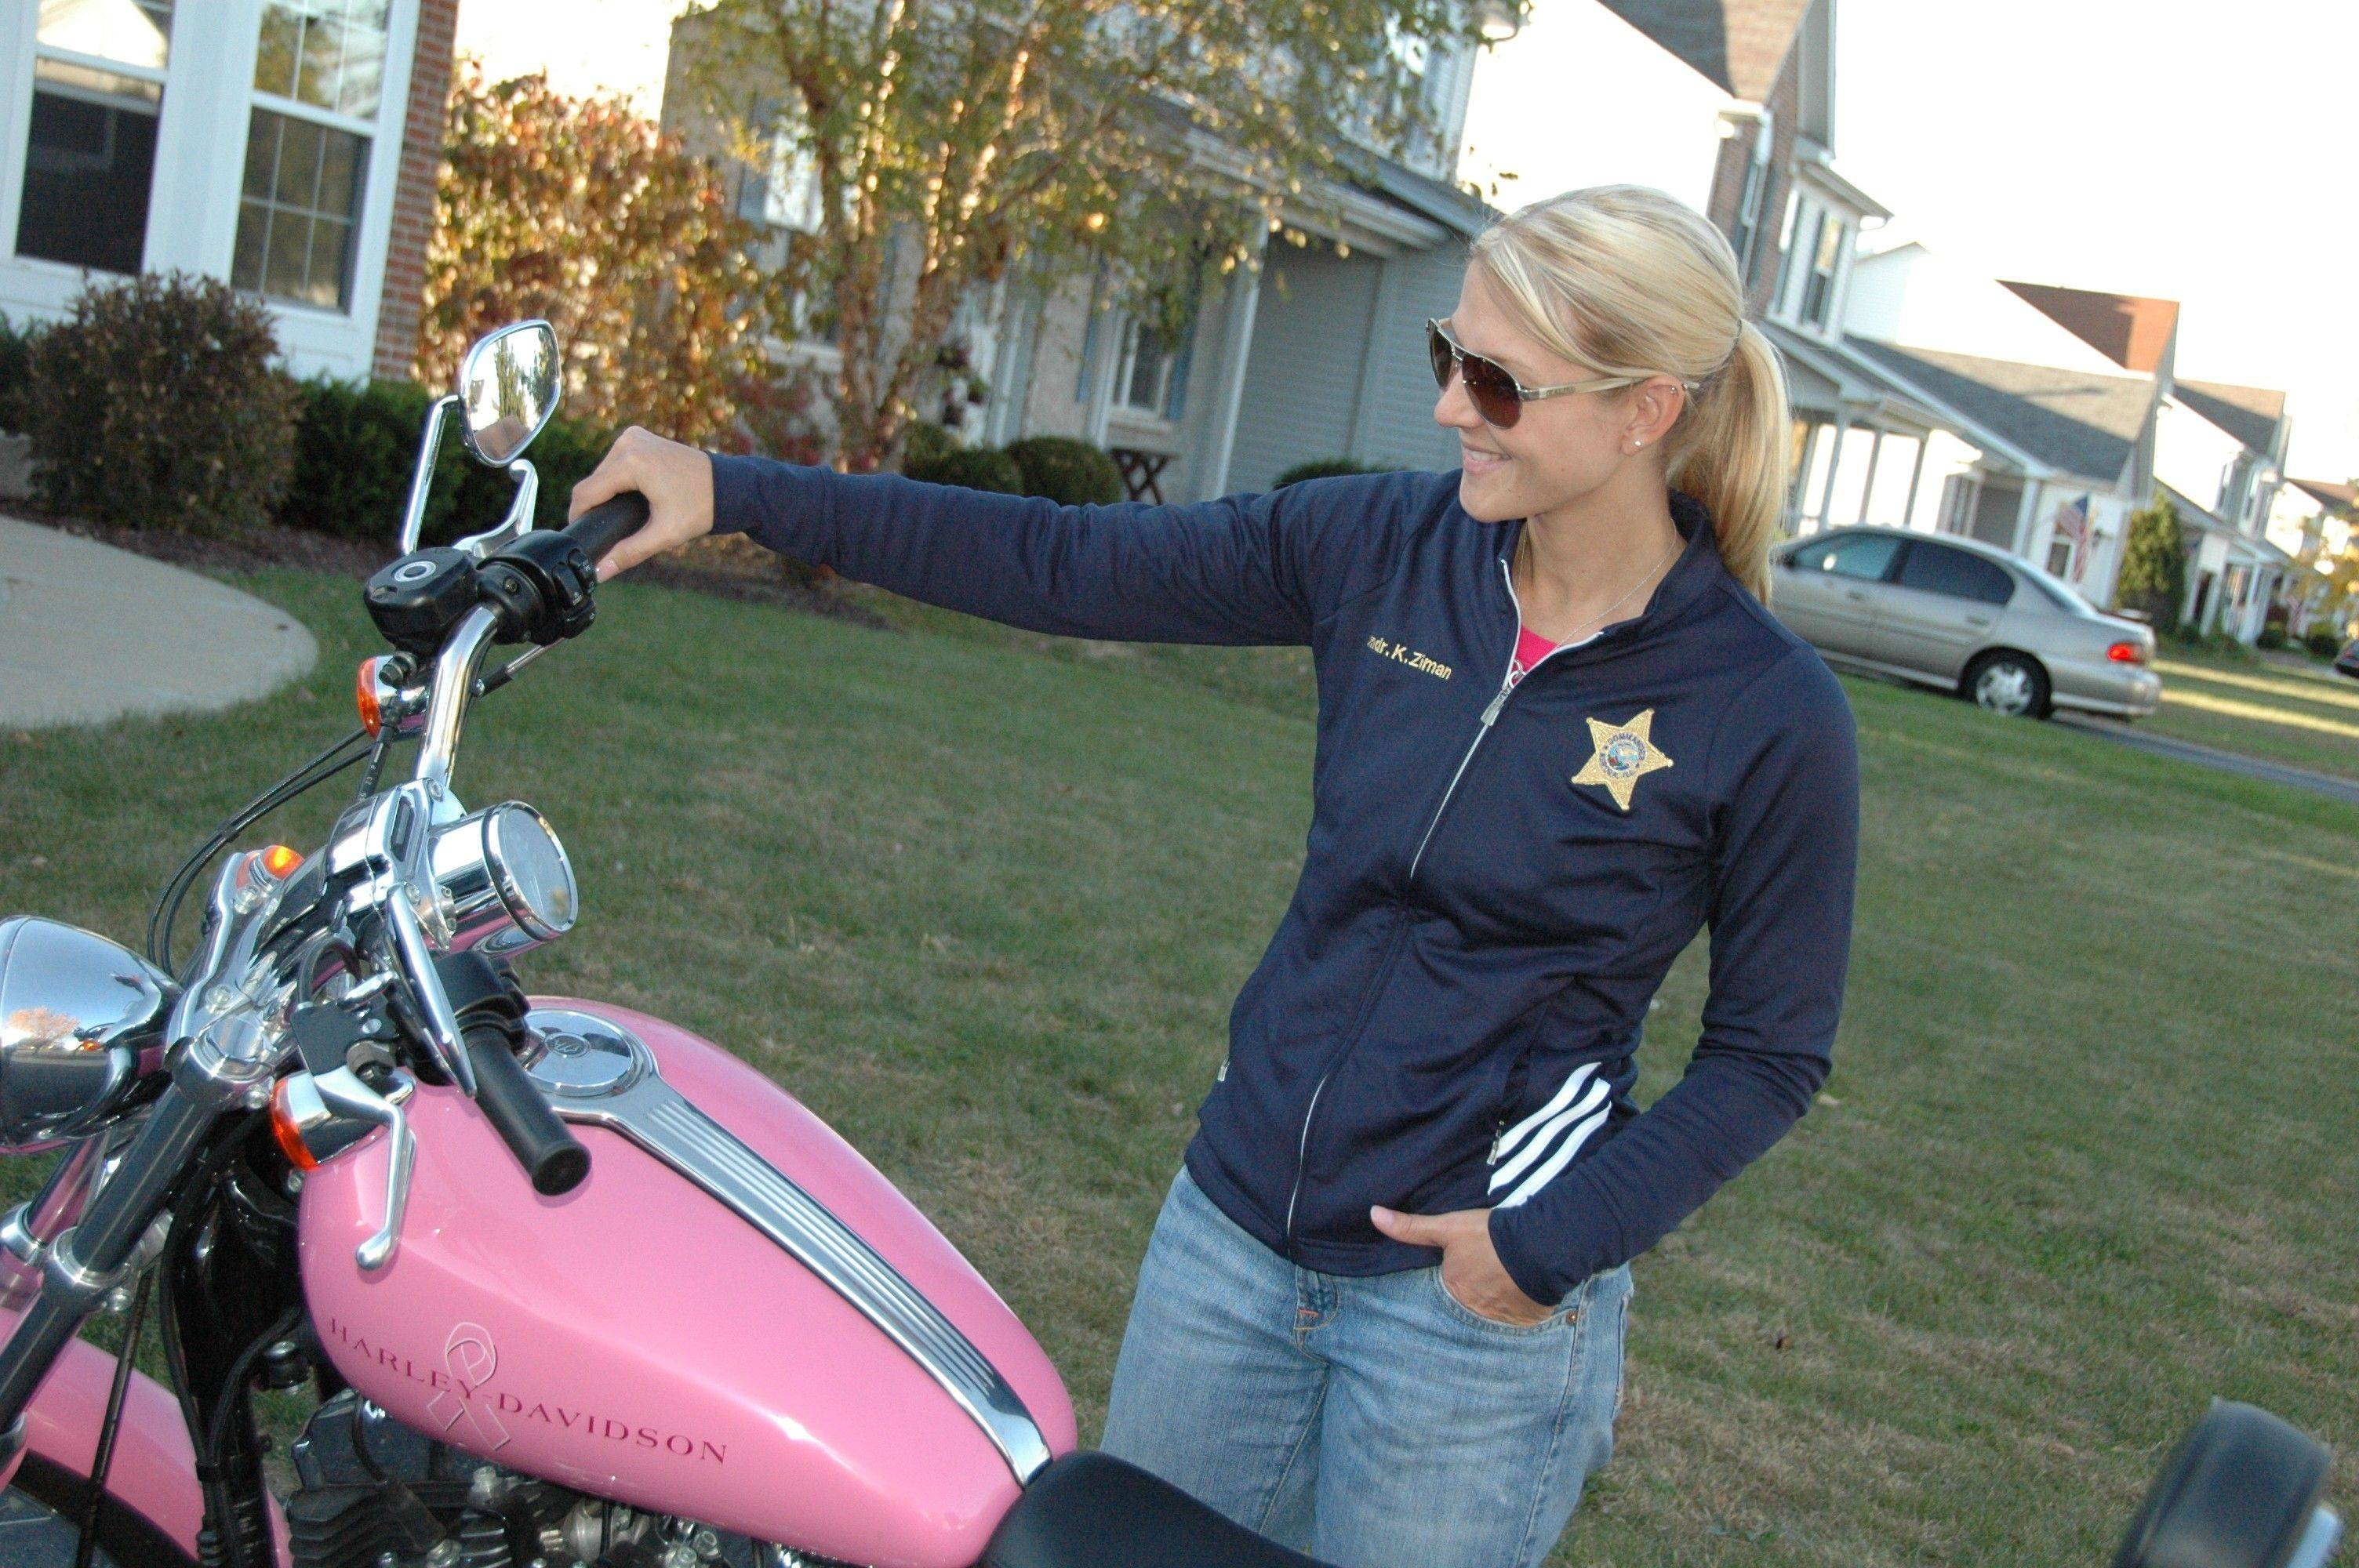 Kristen Ziman, commander of the Bureau of Neighborhood Policing for the Aurora Police Department, inspects her pink Harley-Davidson motorcycle.